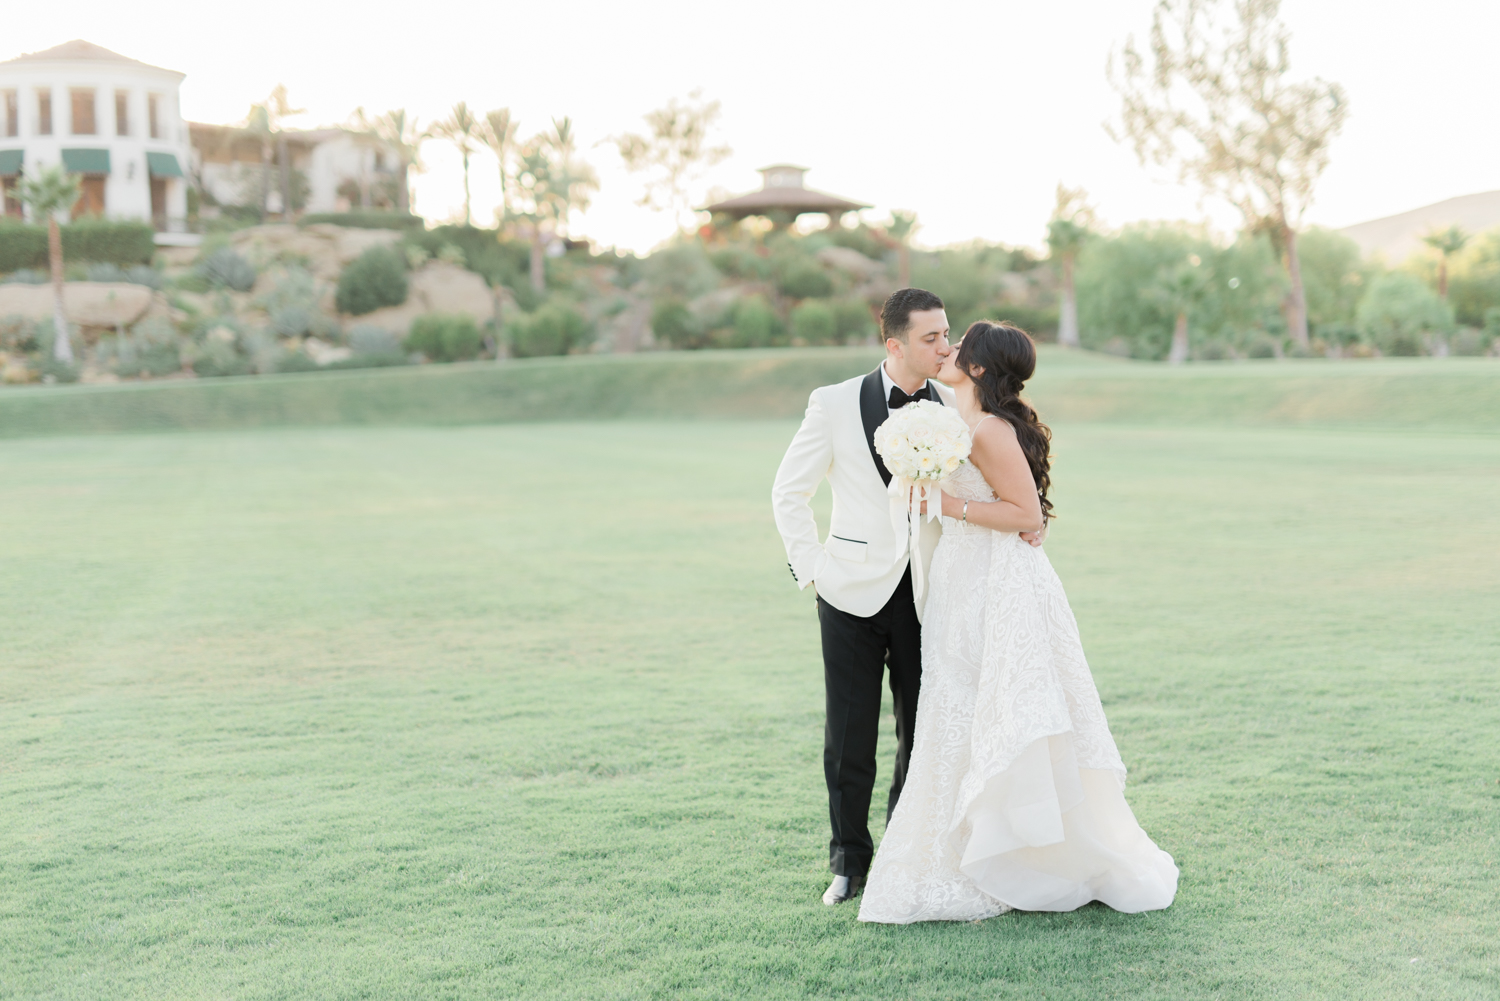 azer&michelle_hummingbird_nest_ranch_wedding_fine_art_photographer_los_angeles-31.jpg